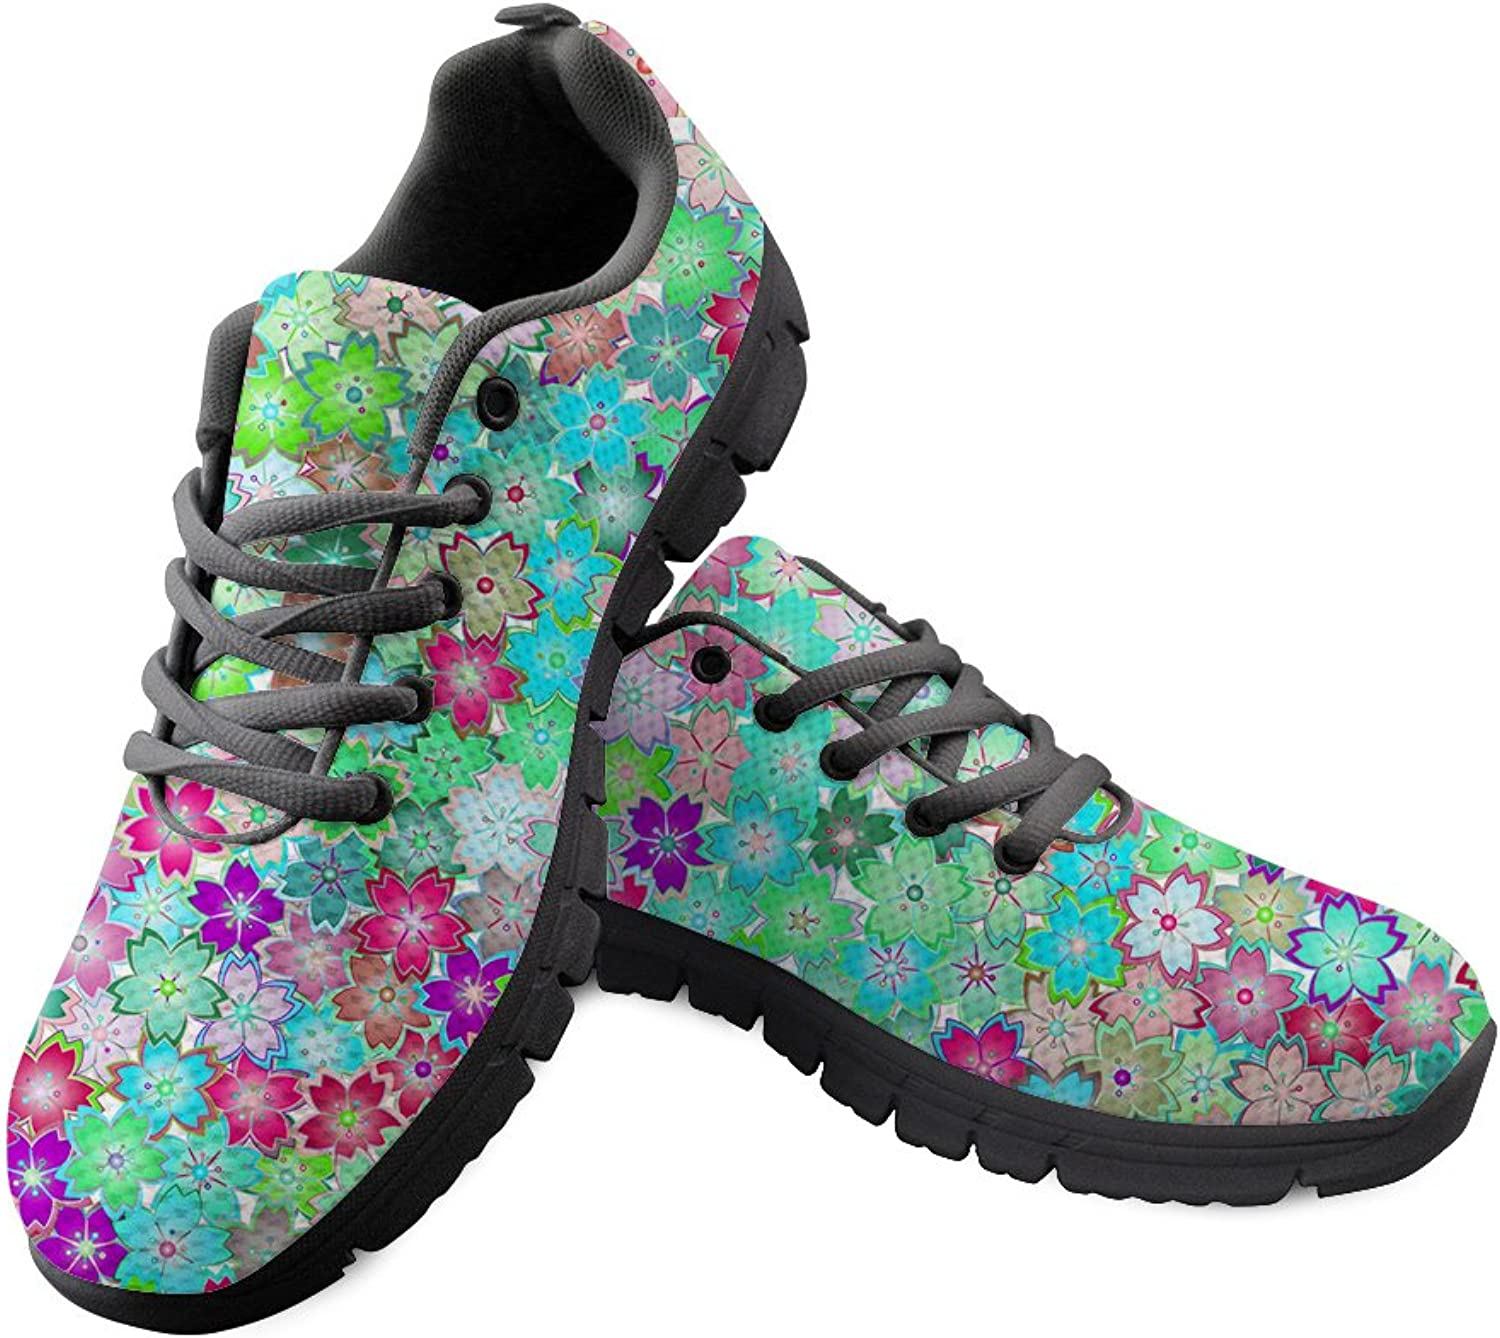 DeePrint Comfortable Athletic Trainer Tennis Athletic Sneakers shoes 2018 Sport shoes